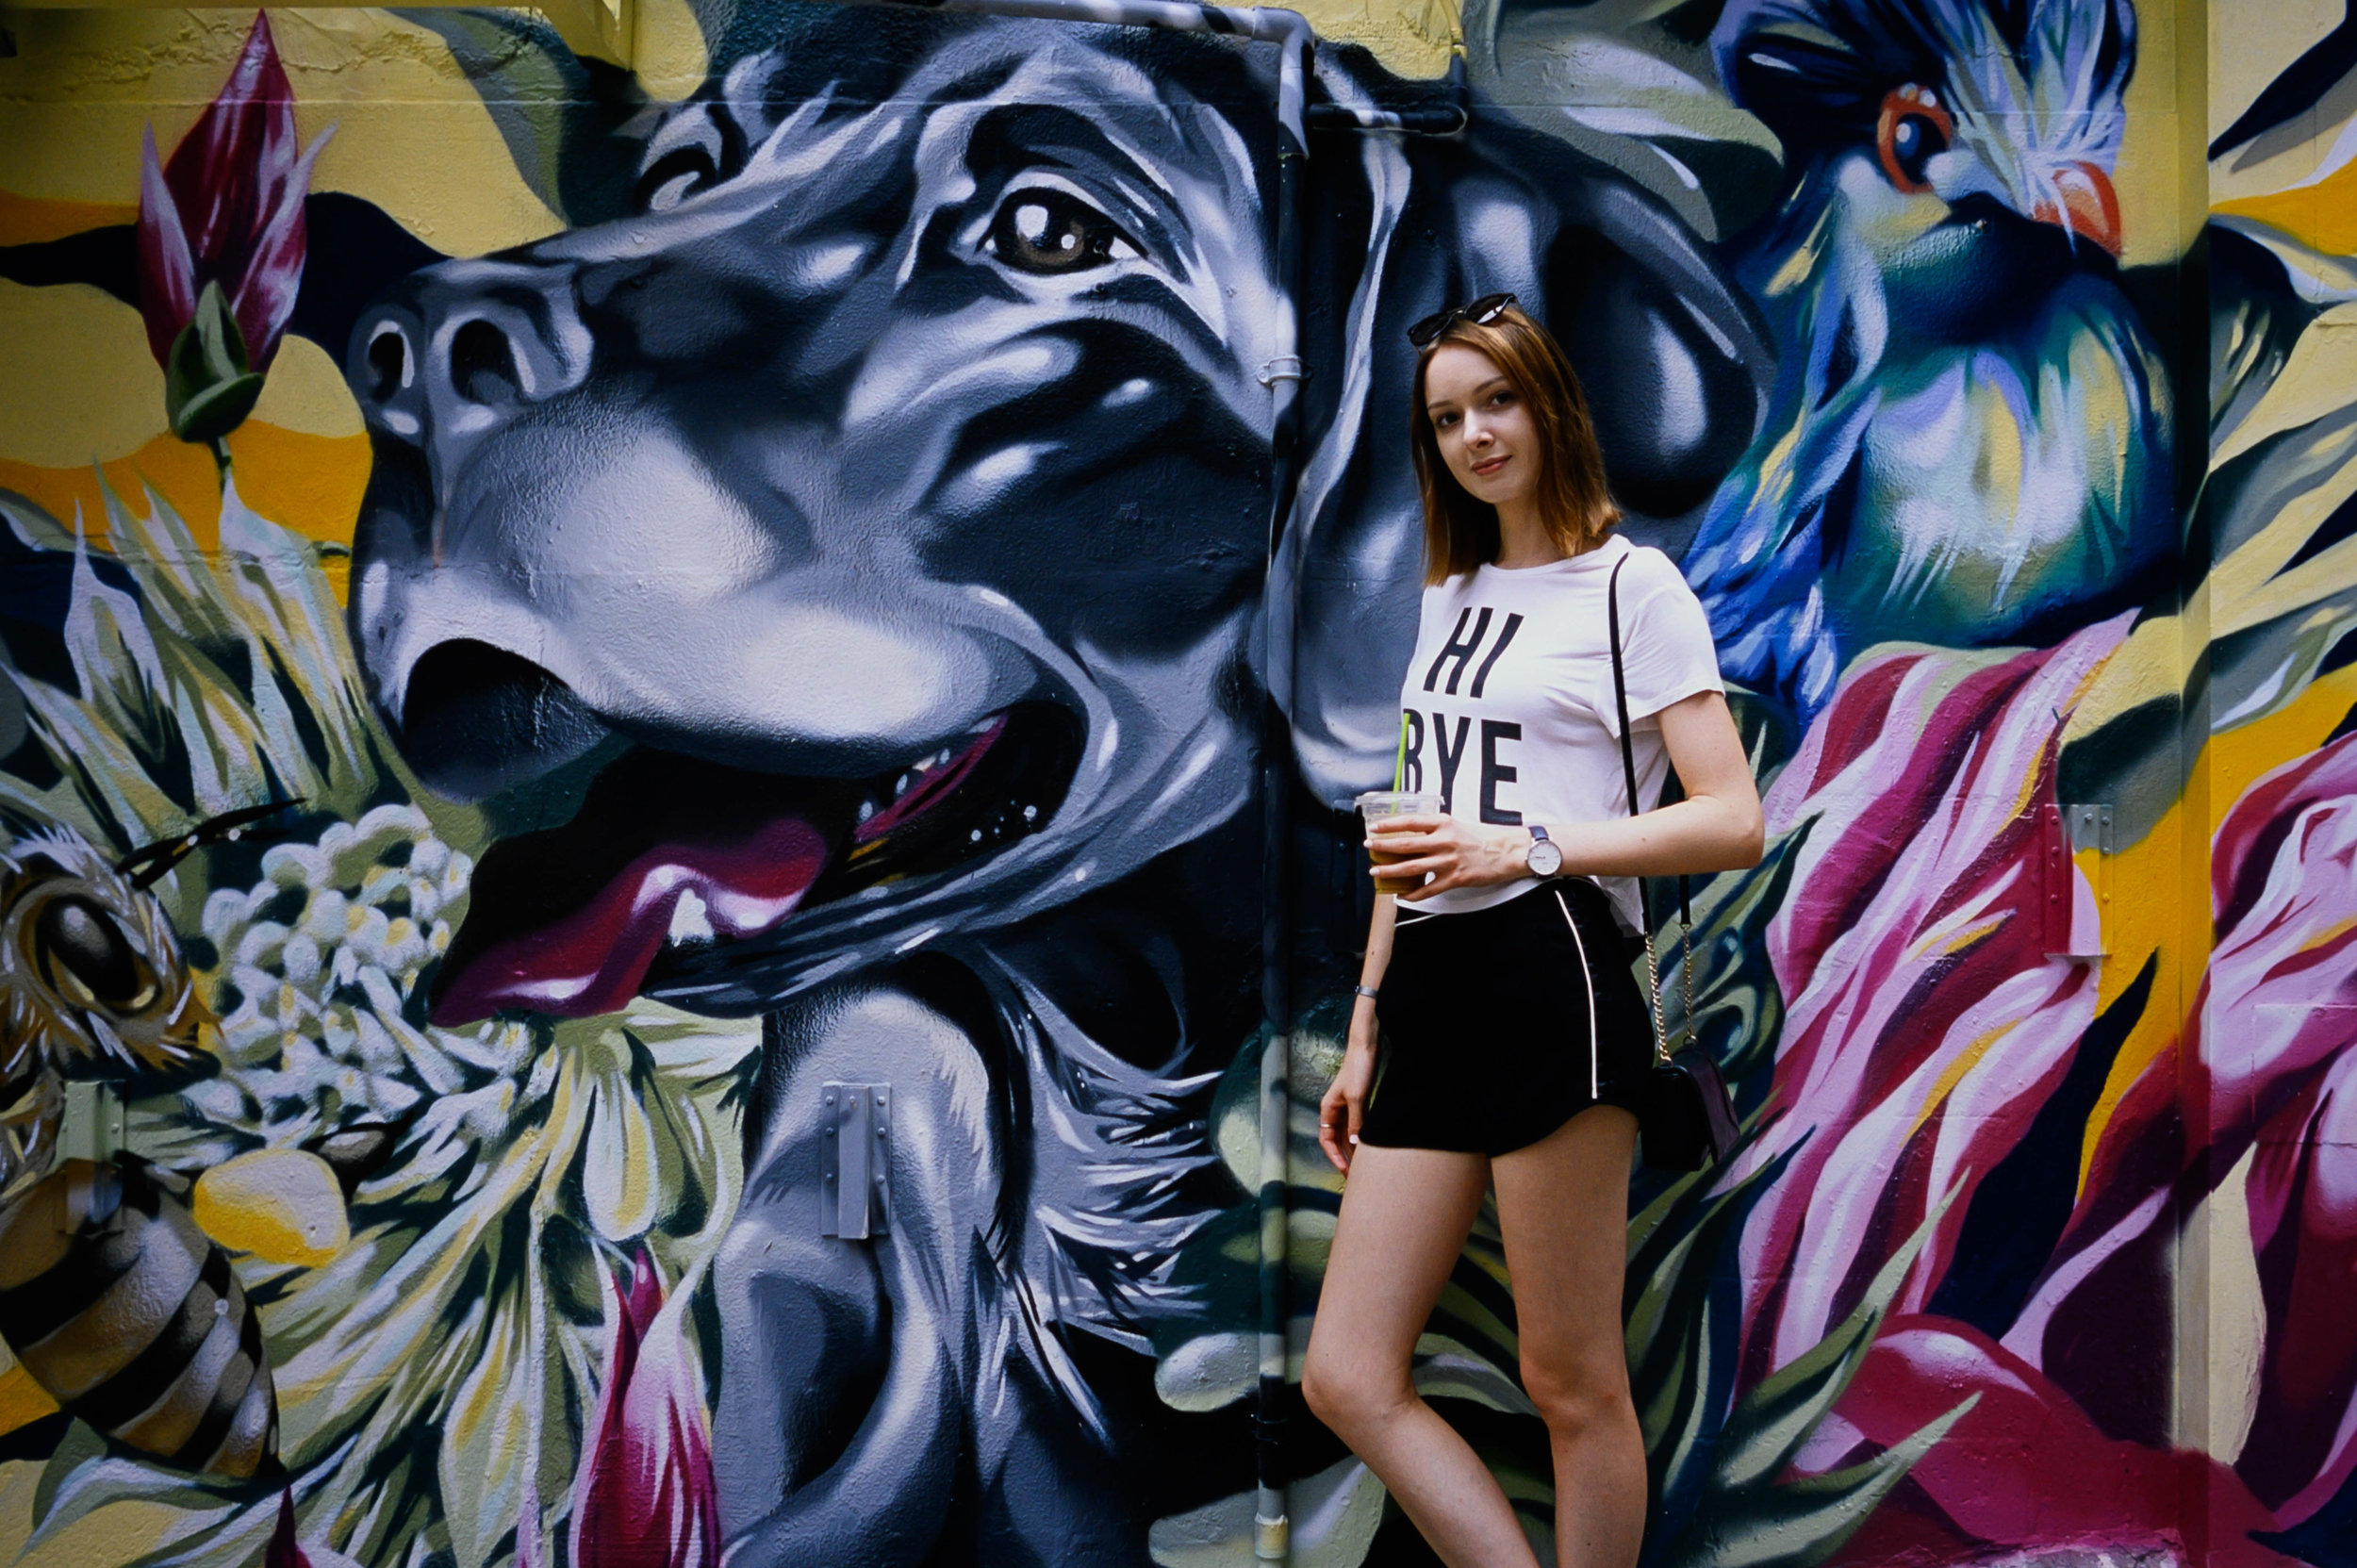 Fujifilm Provia 100F @ 28mm Focal Length - Speaking of conspicuous sights… umm… this mural. You definitely can't miss it, caked-on with intensity.